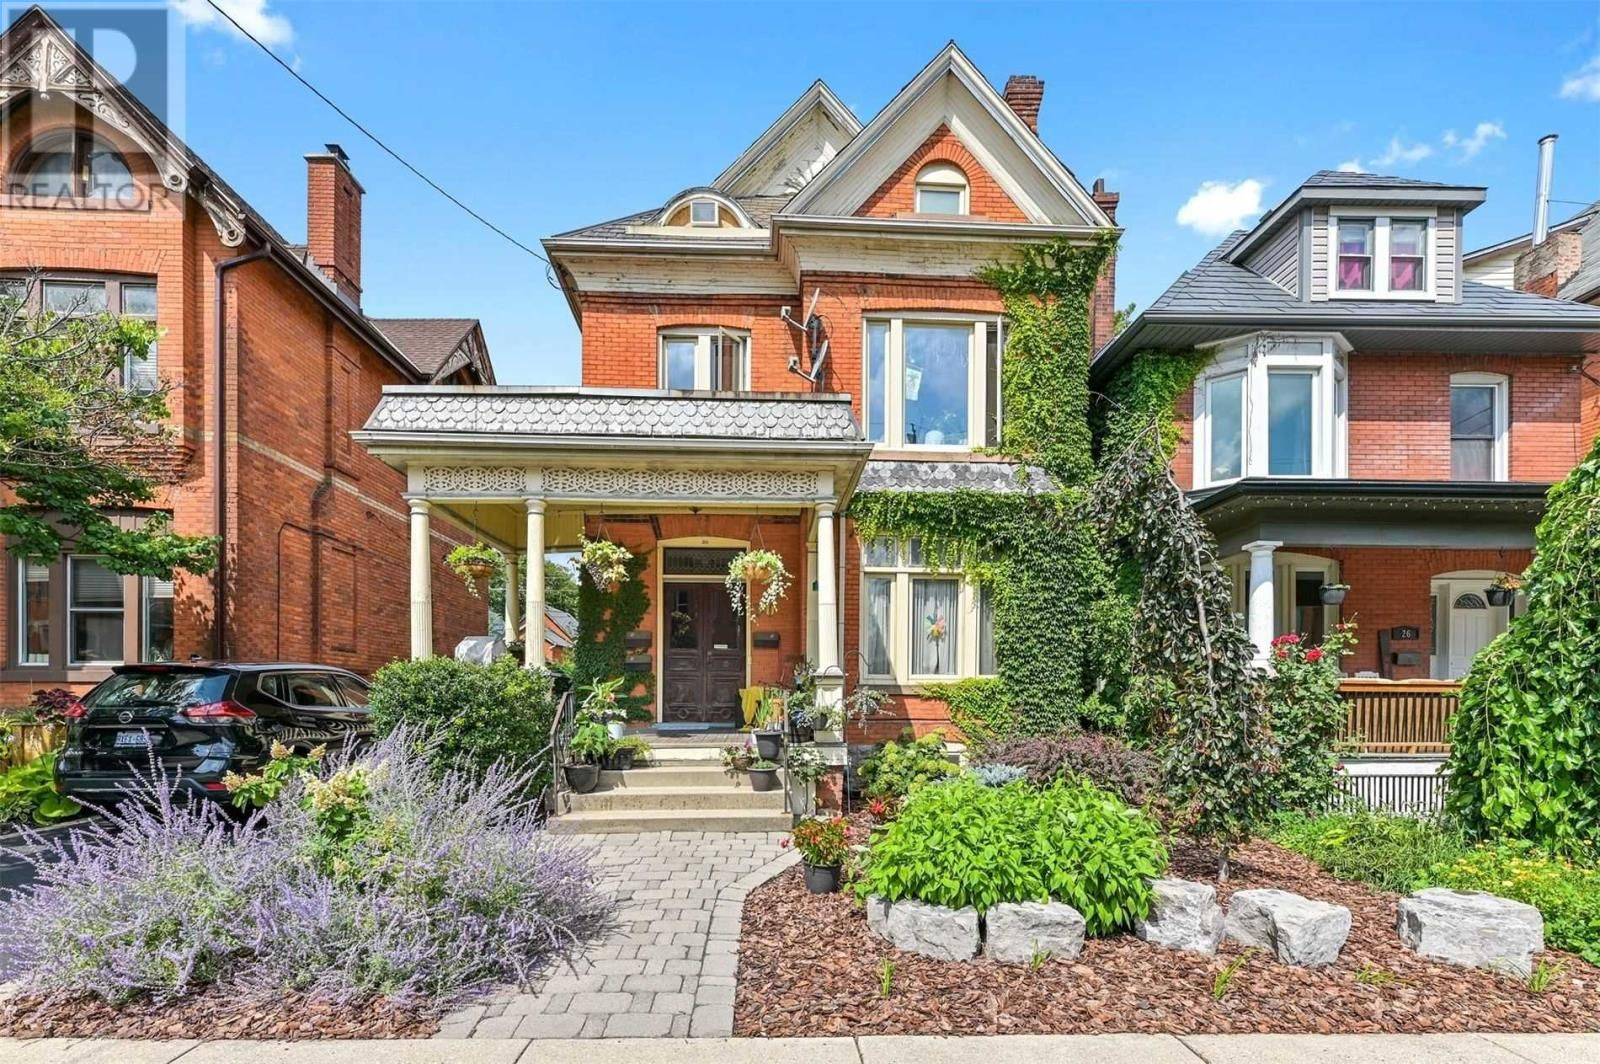 Main Photo: 30 ONTARIO AVE in Hamilton: House for sale : MLS®# X5372073